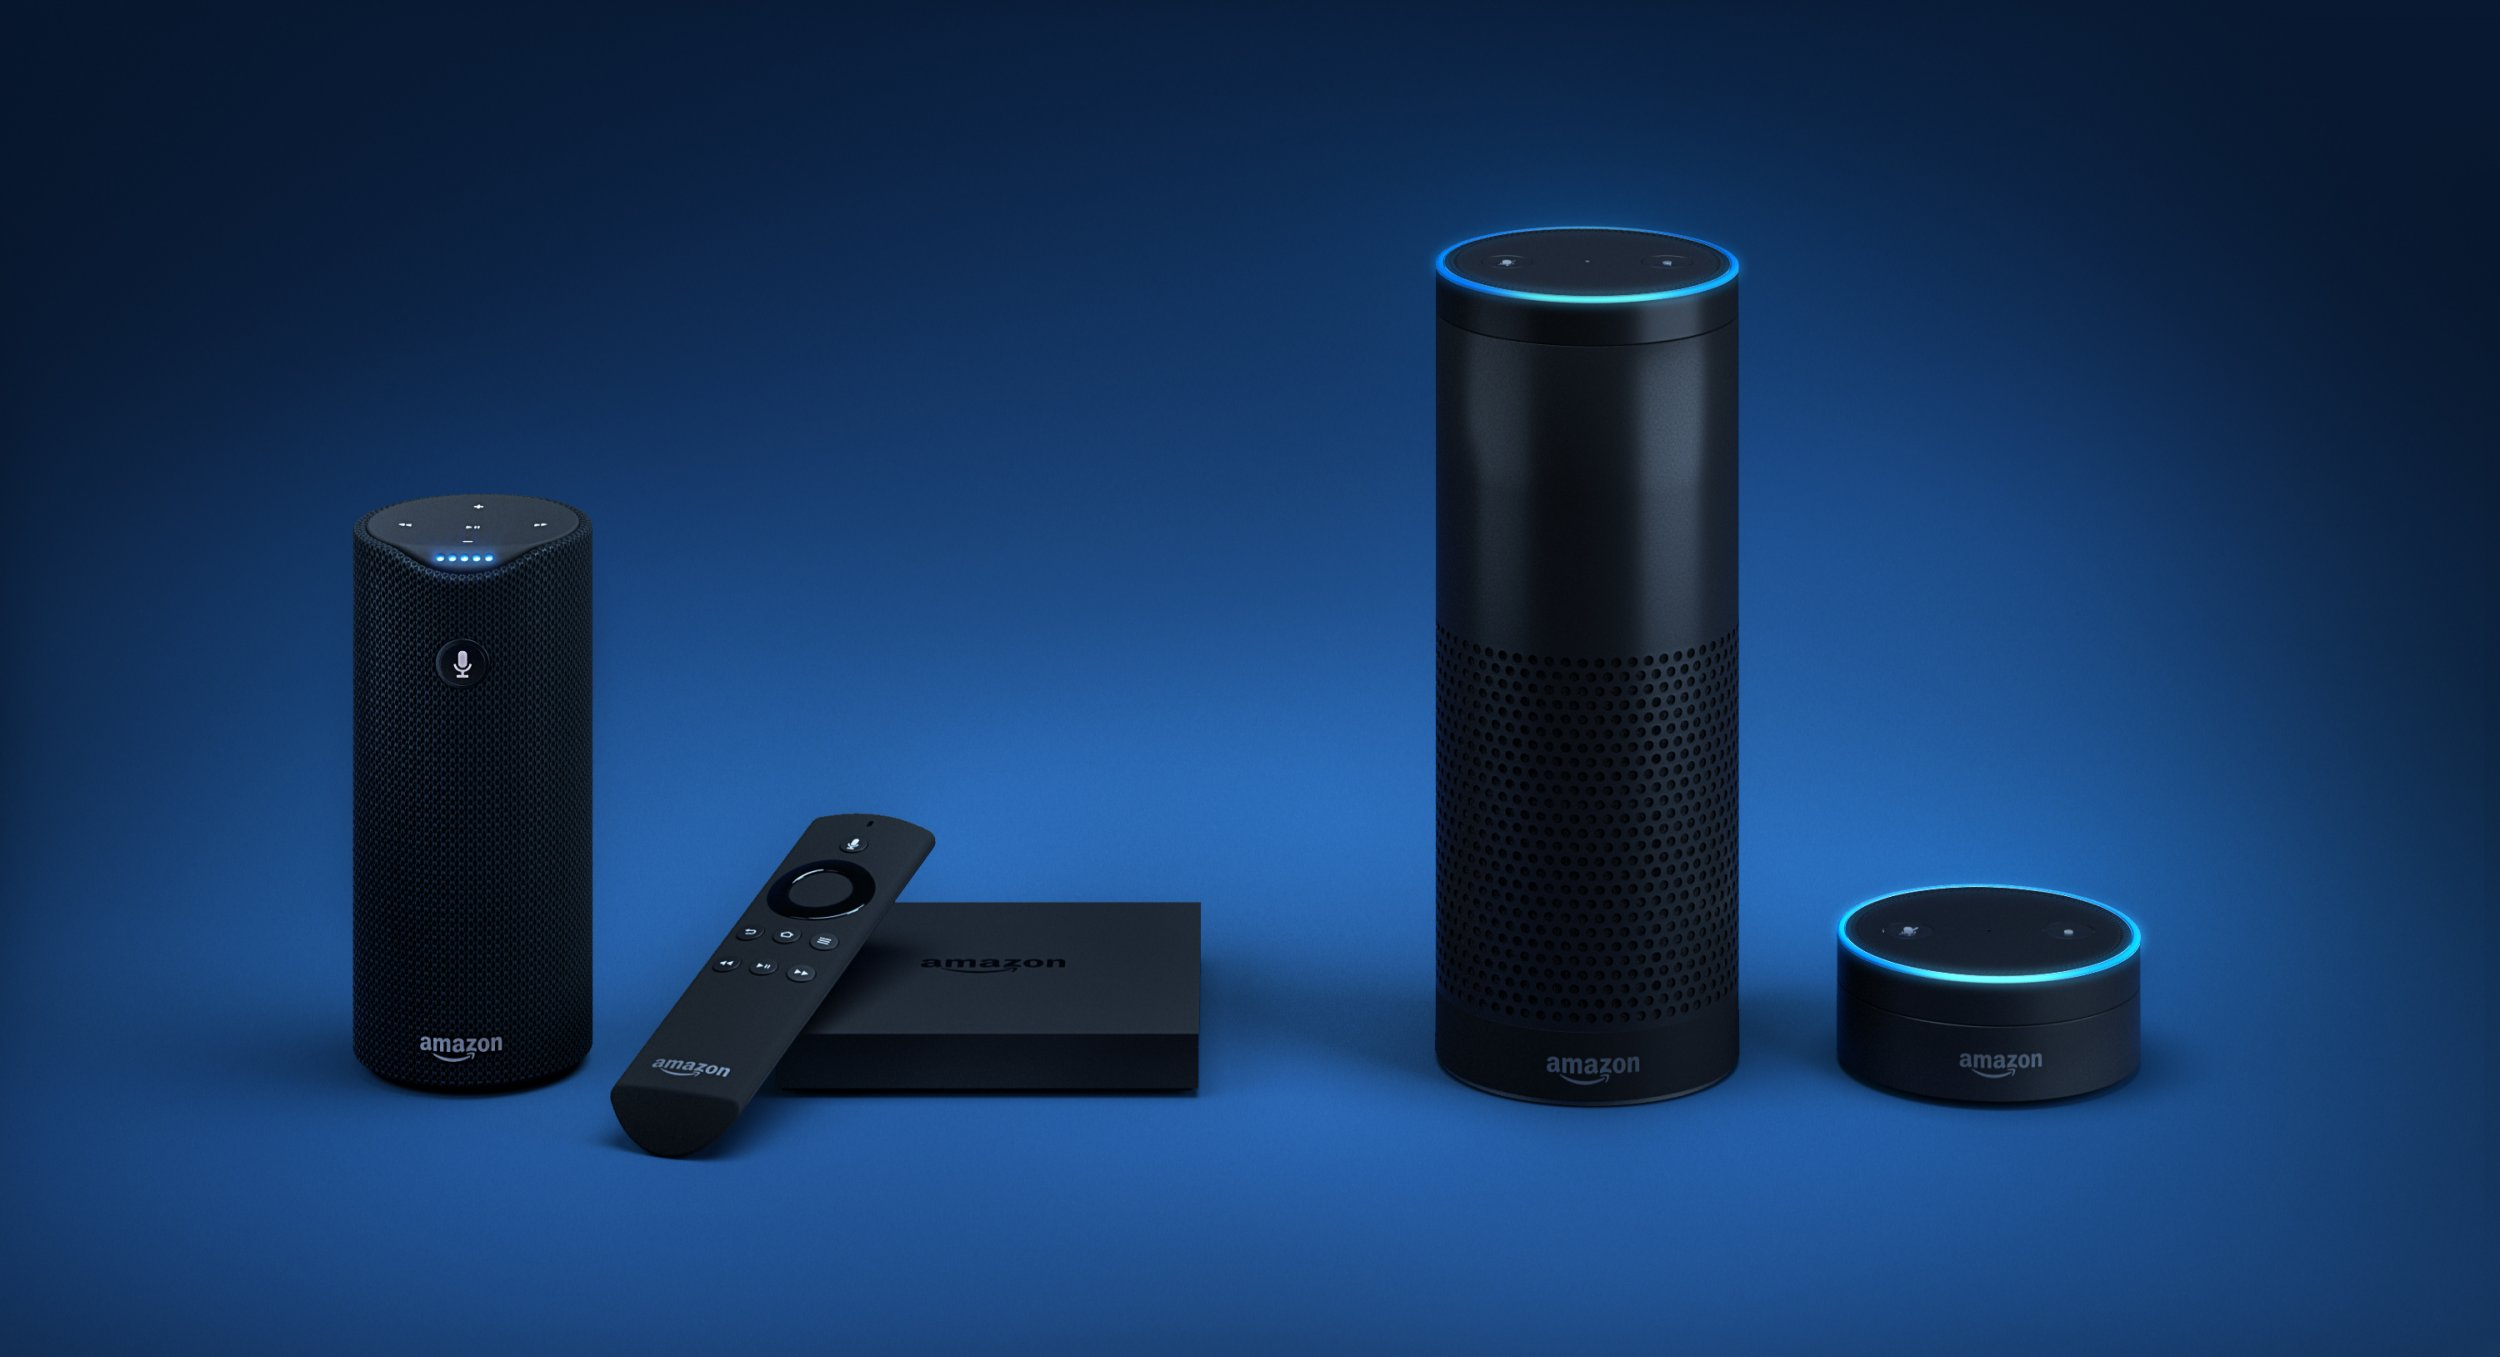 An Amazon Echo with a screen